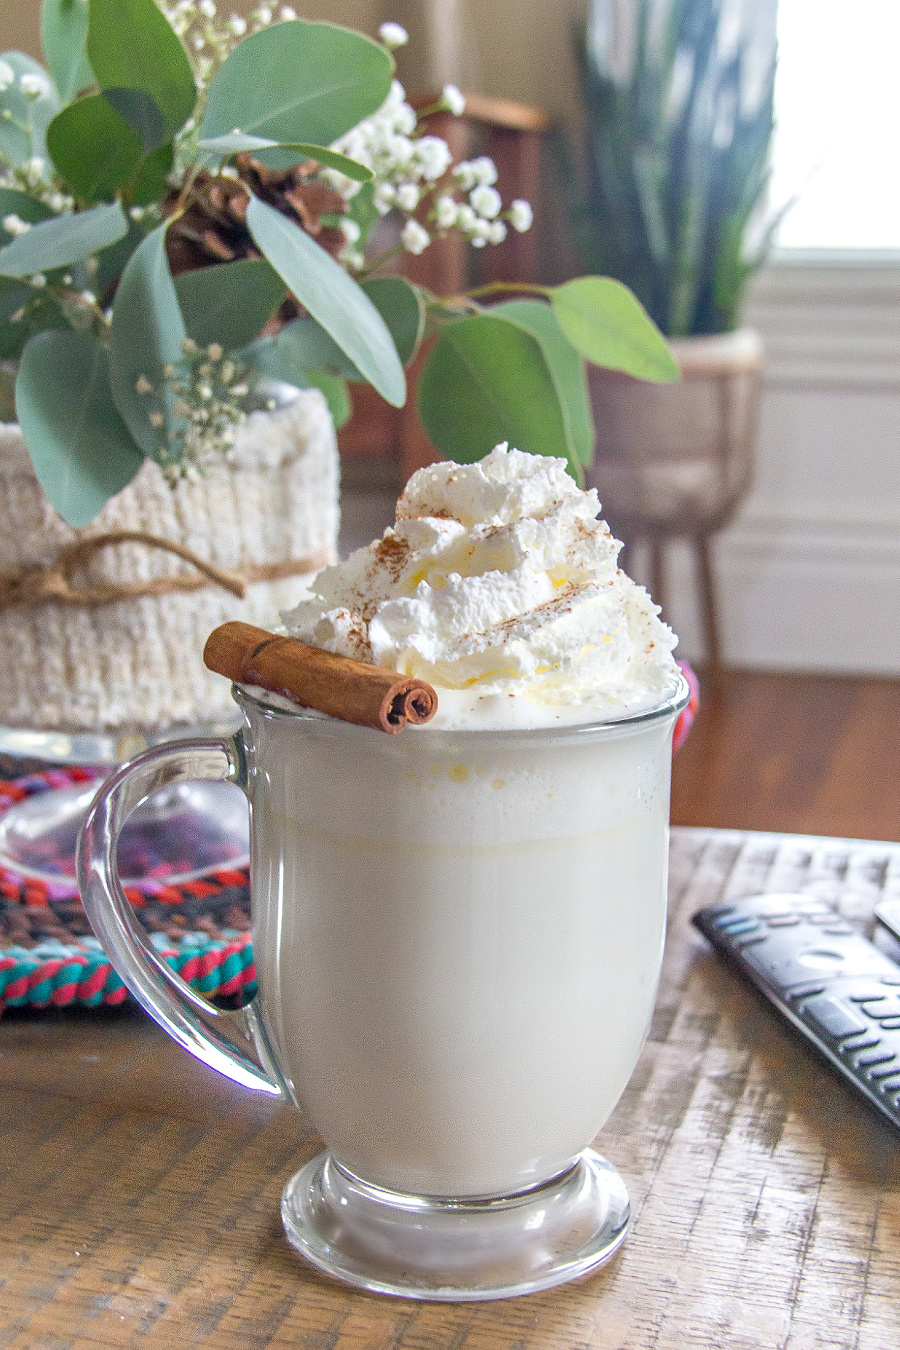 white hot chocolate topped with a cinnamon stick and ground cinnamon in a clear mug